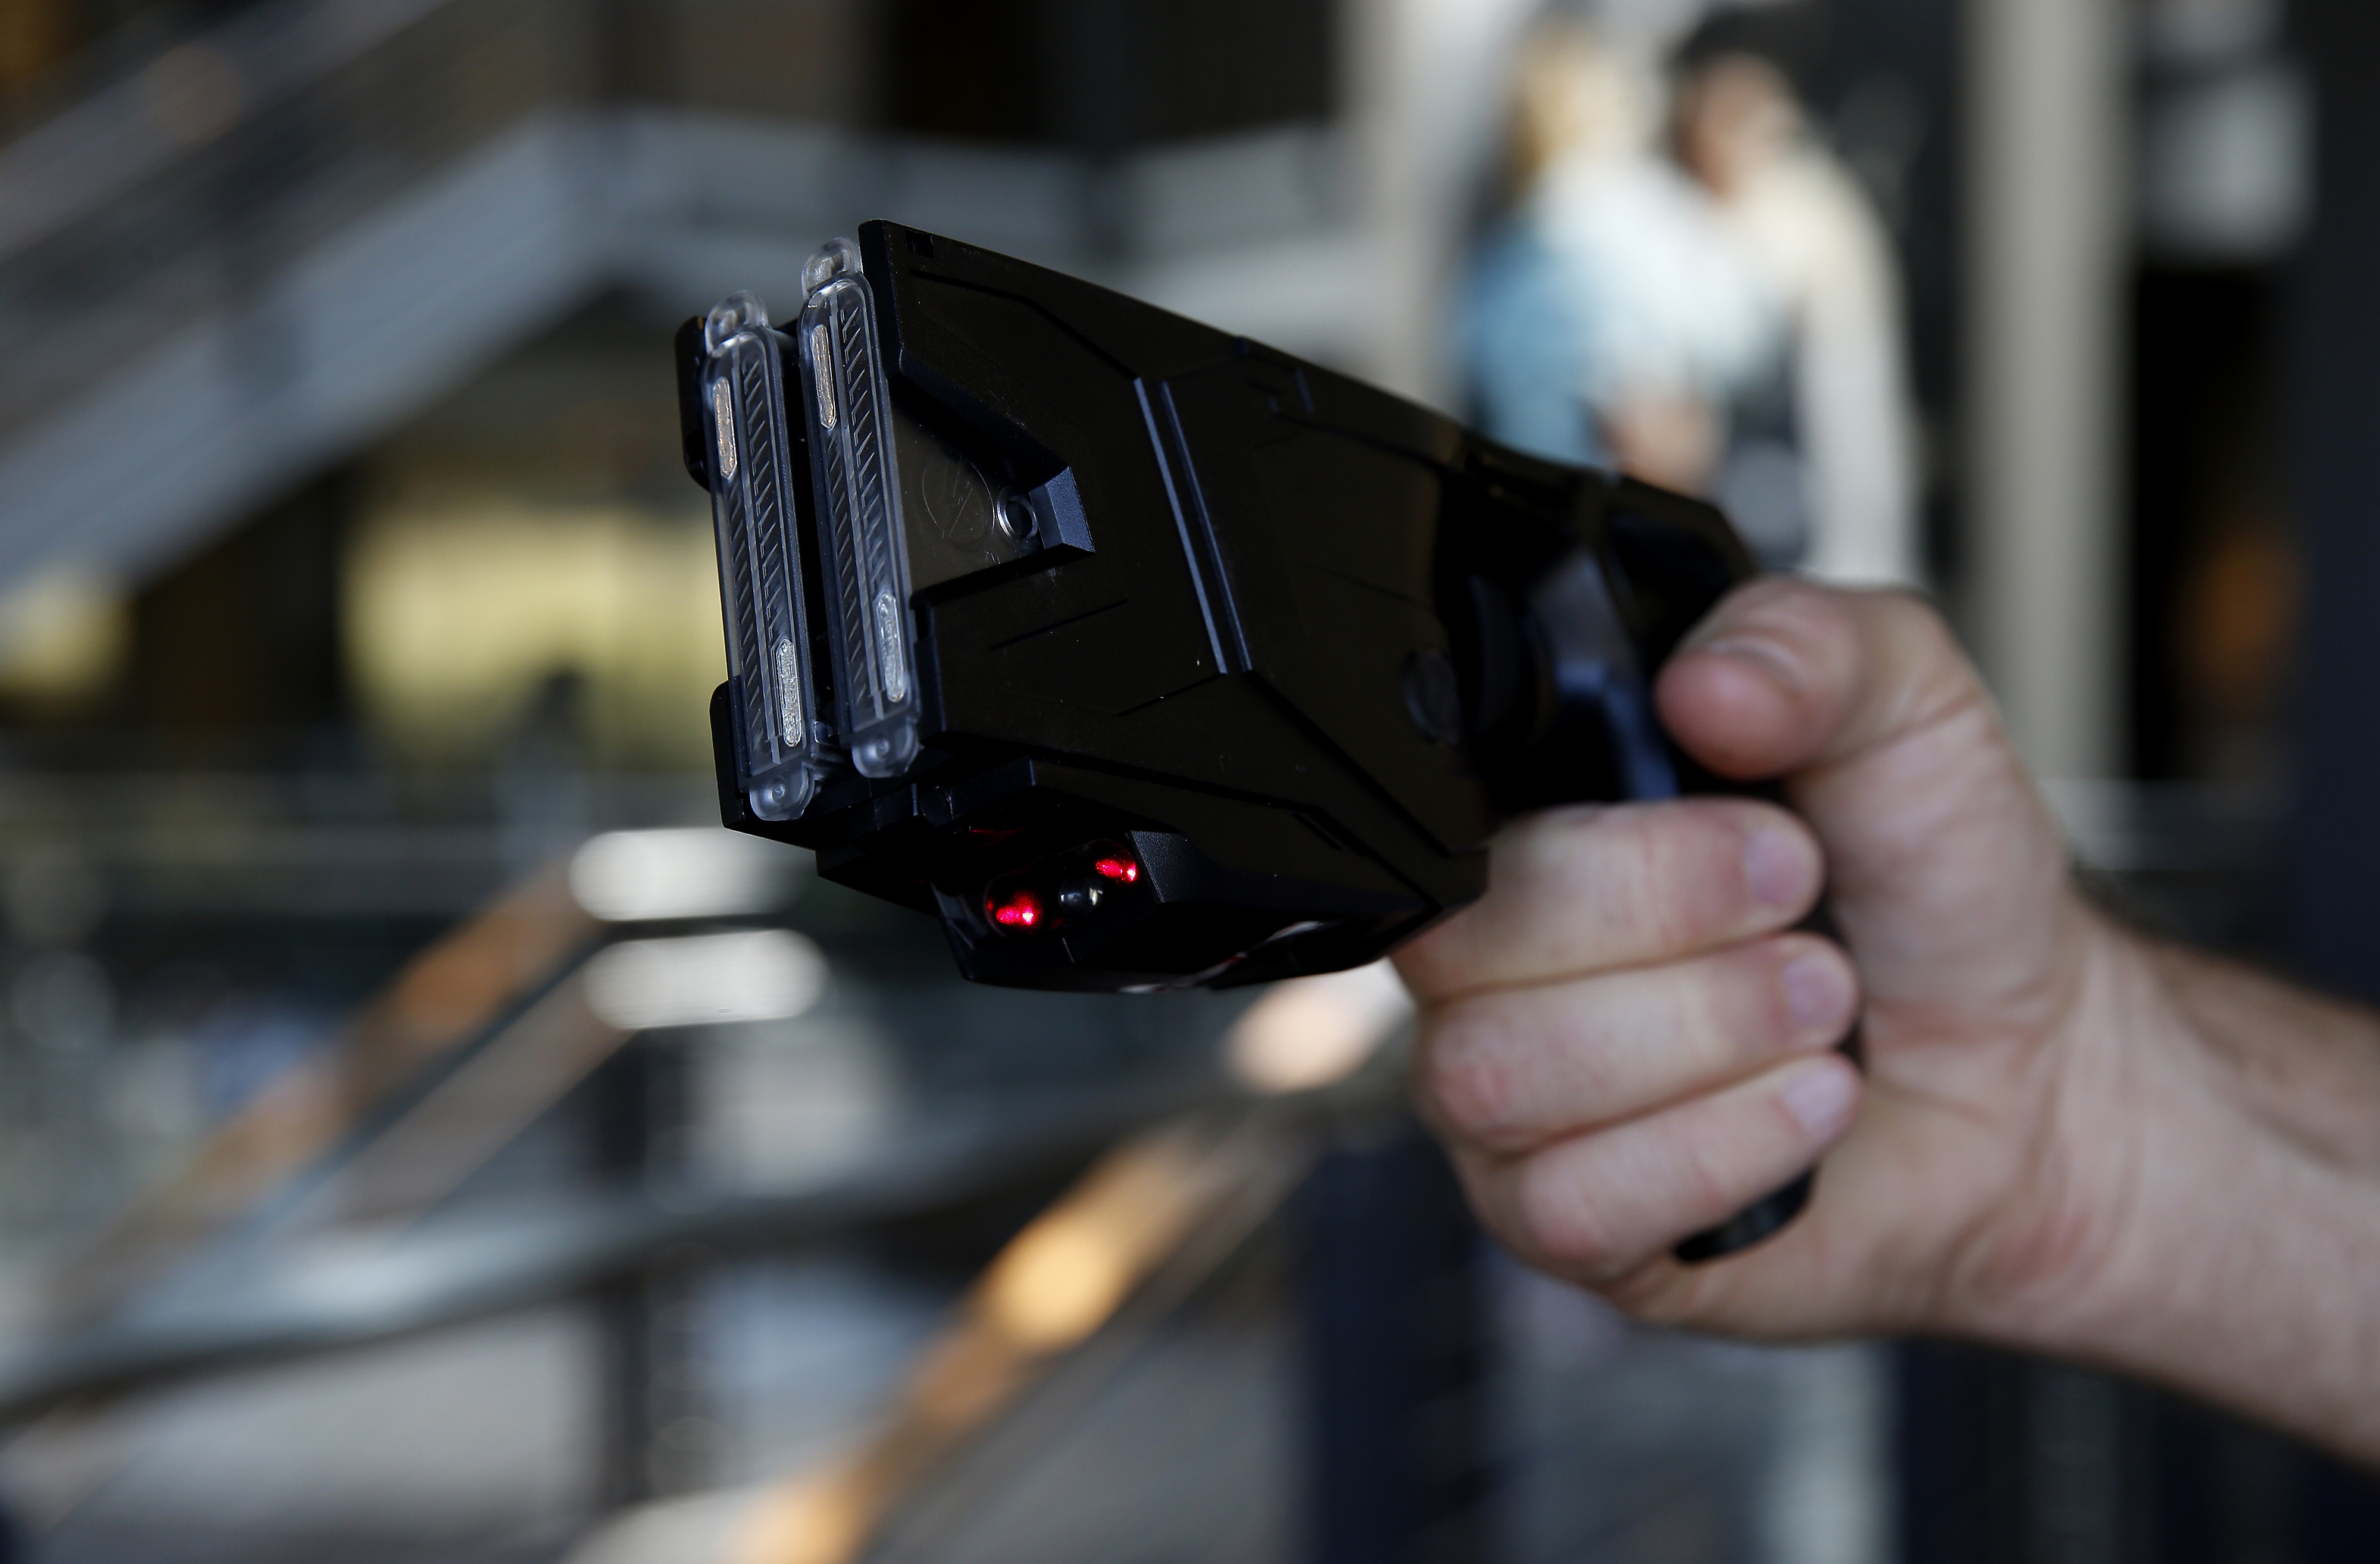 The Taser X2 electronic weapon arranged for a photograph at the Taser International headquarters in Scottsdale, Ariz., April 22, 2015